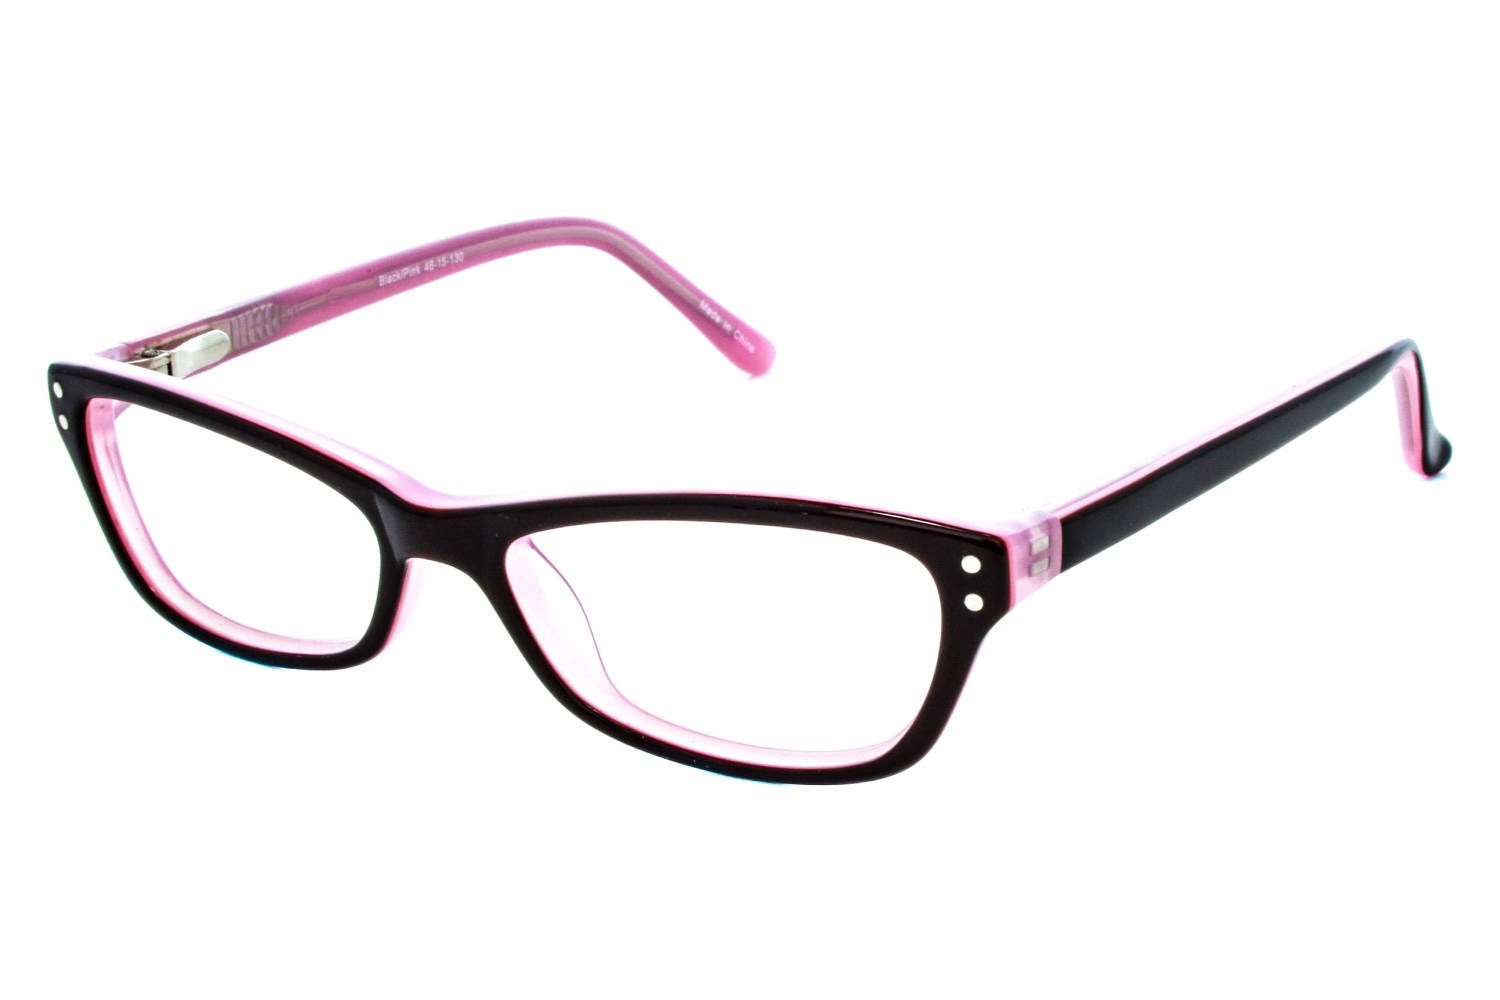 Lunettos Candy Prescription Eyeglasses Frames